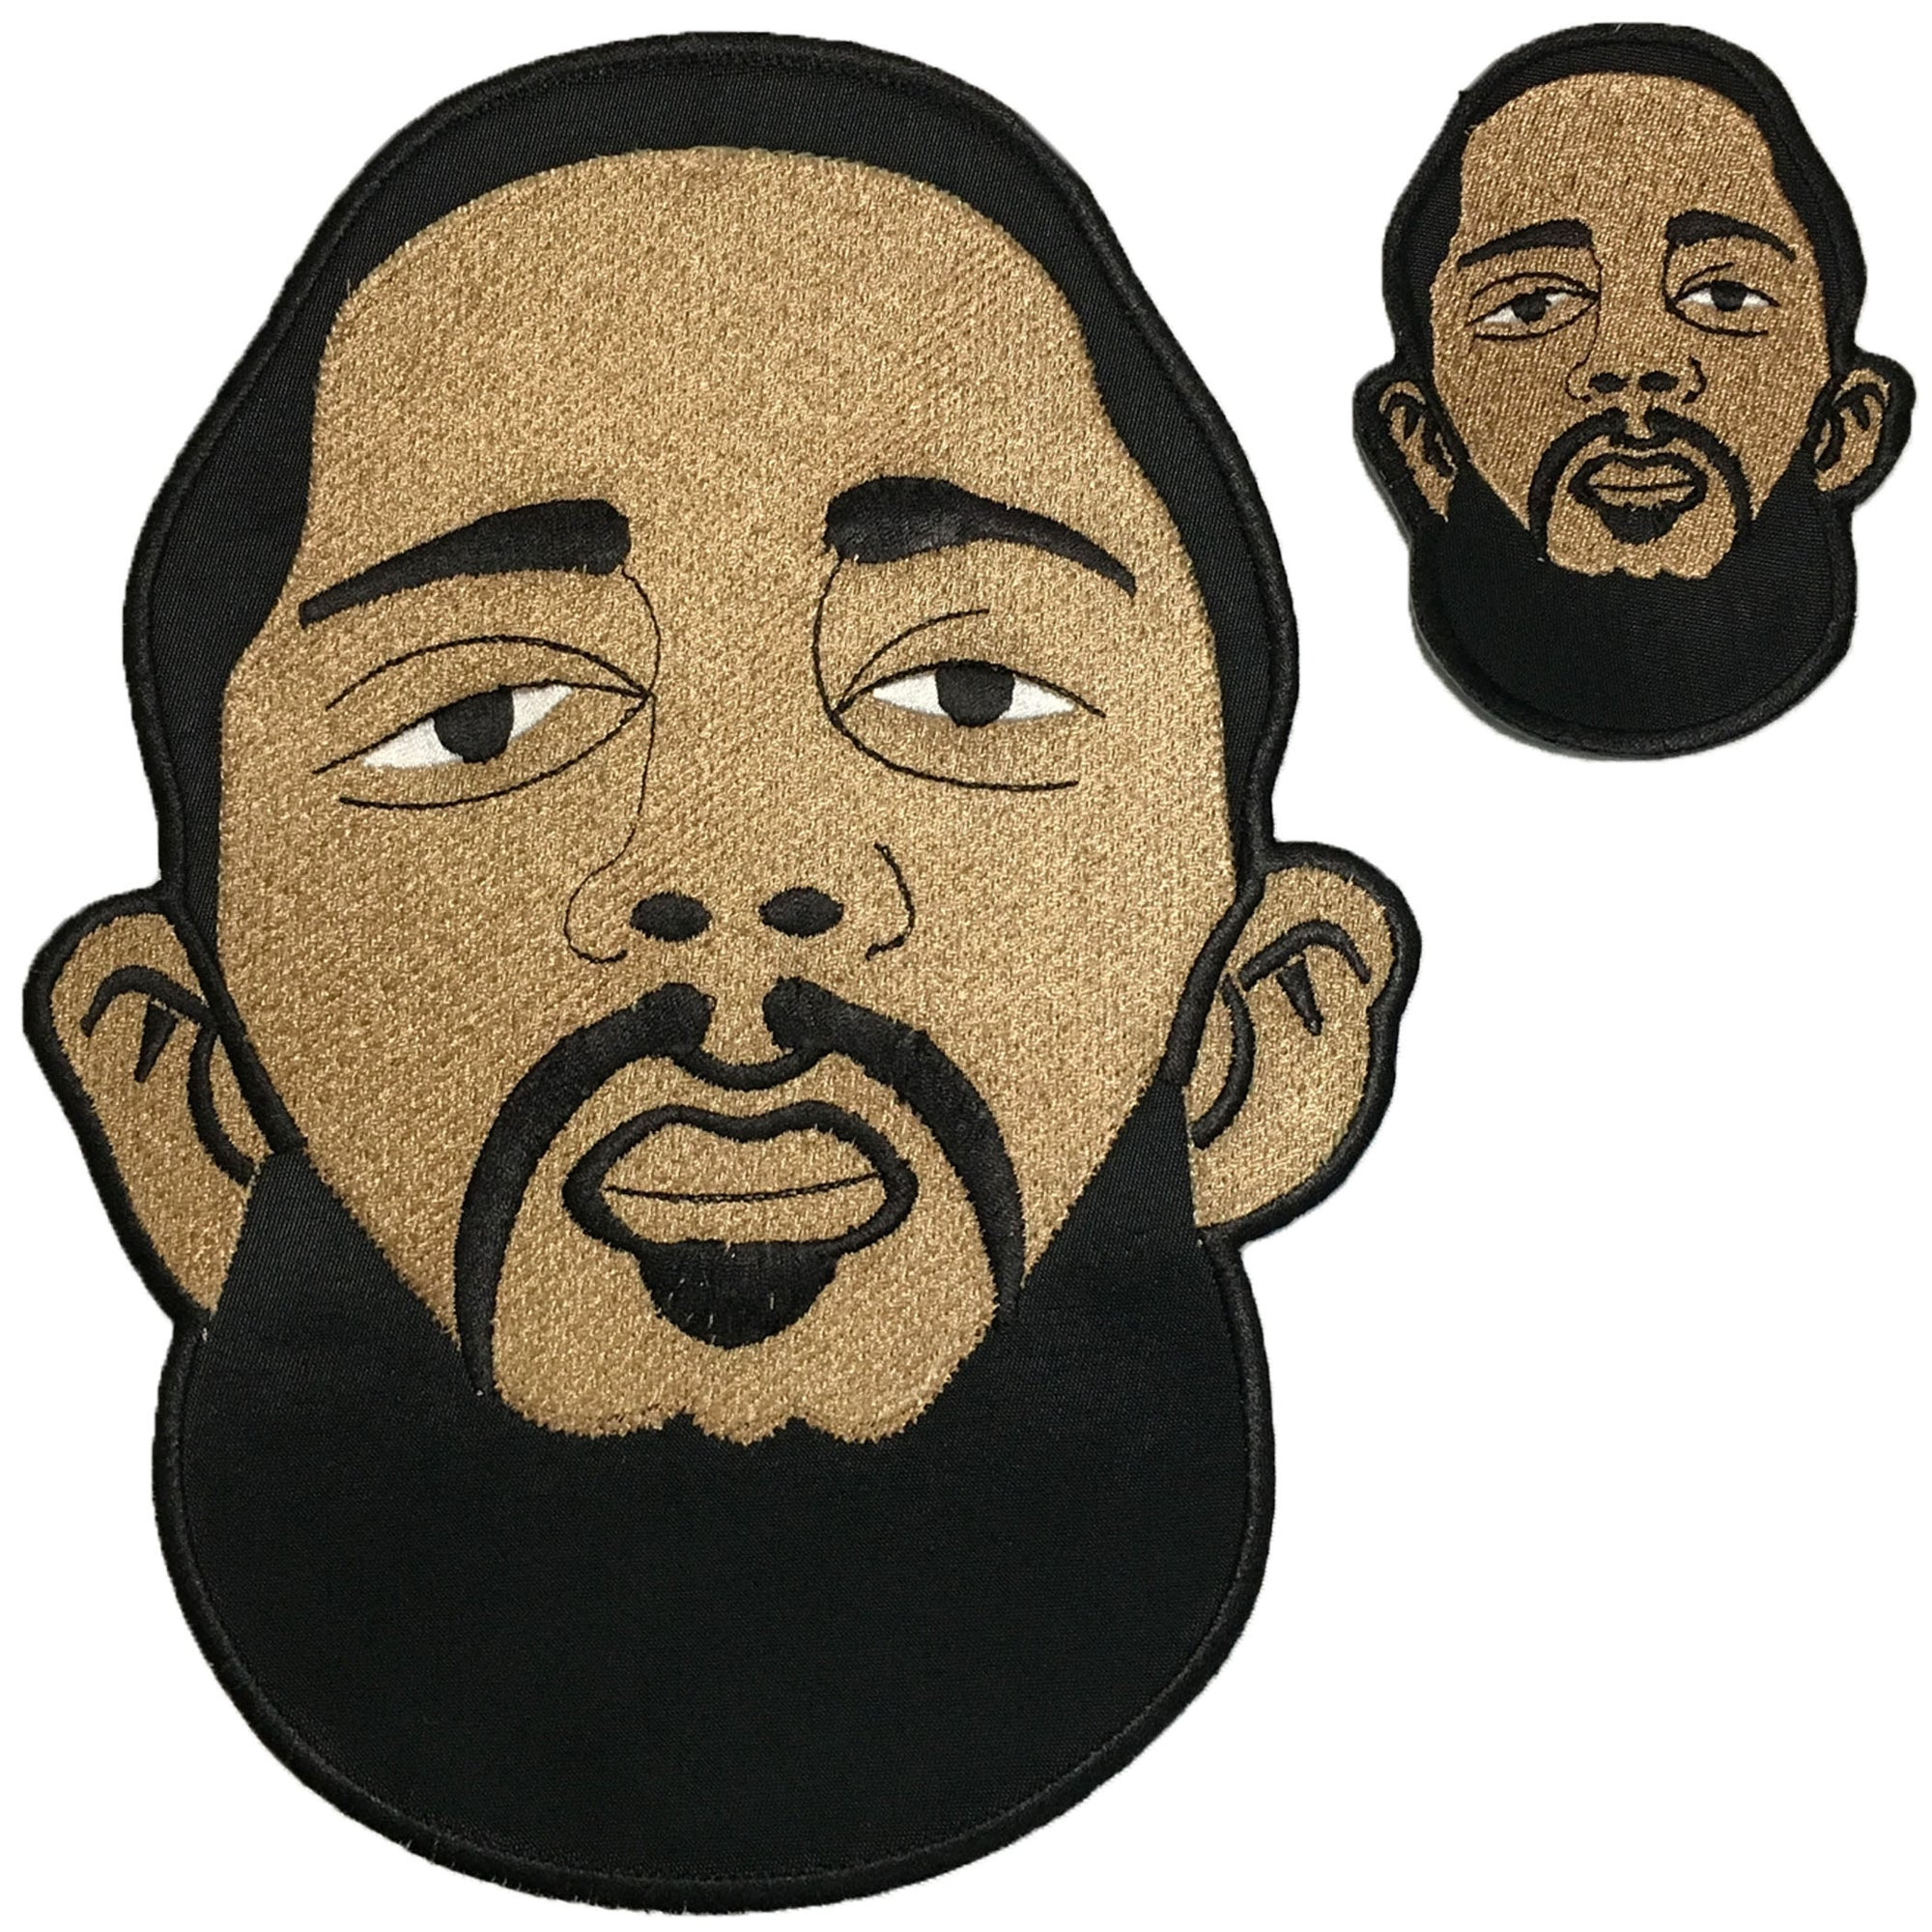 Nipsey Patches - The Carter Brand - Black By Popular Demand - Rooting For Everybody Black - Black Pride Apparel